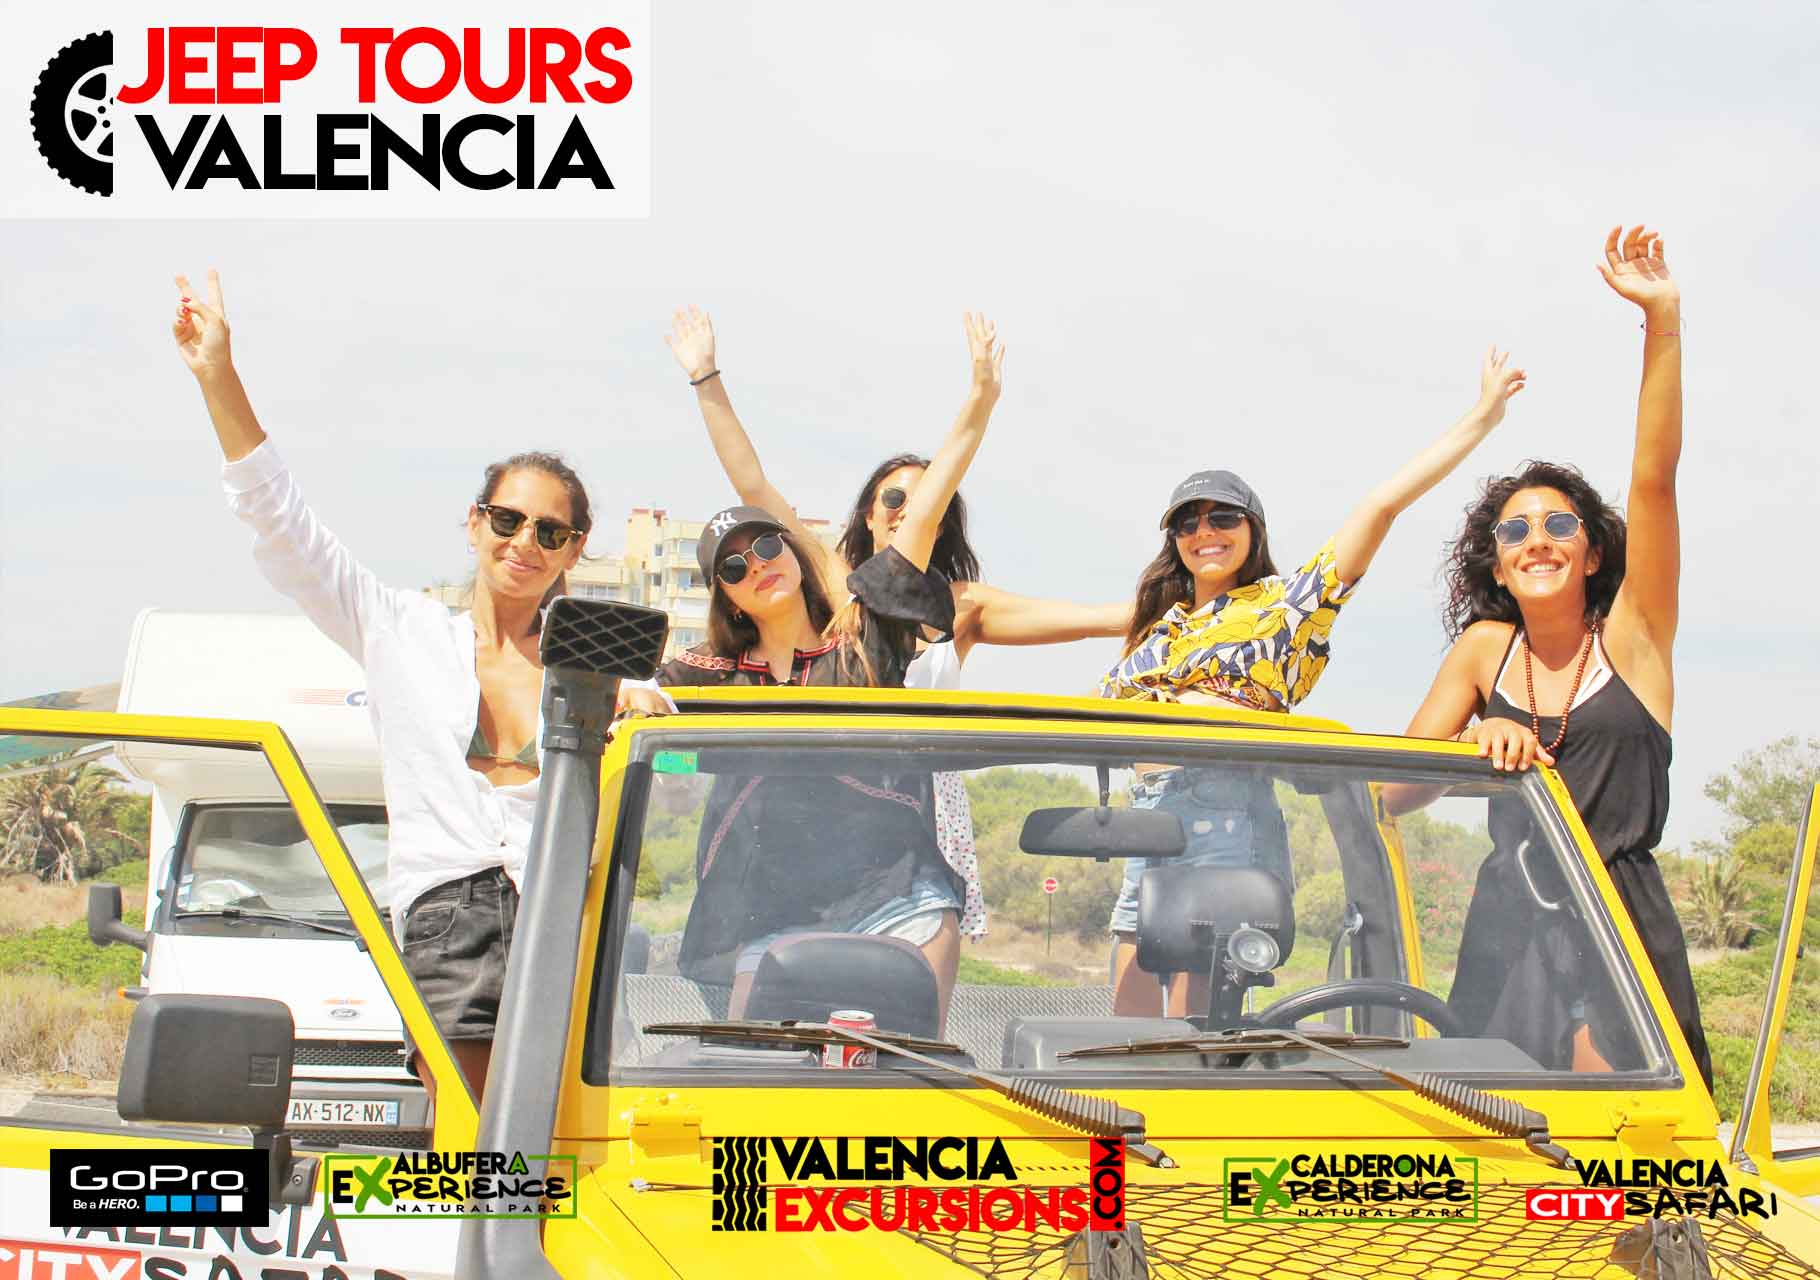 Visiting Albufera with jeeps in Albufera National Park during Albufera EXperience Jeep Tour Valencia